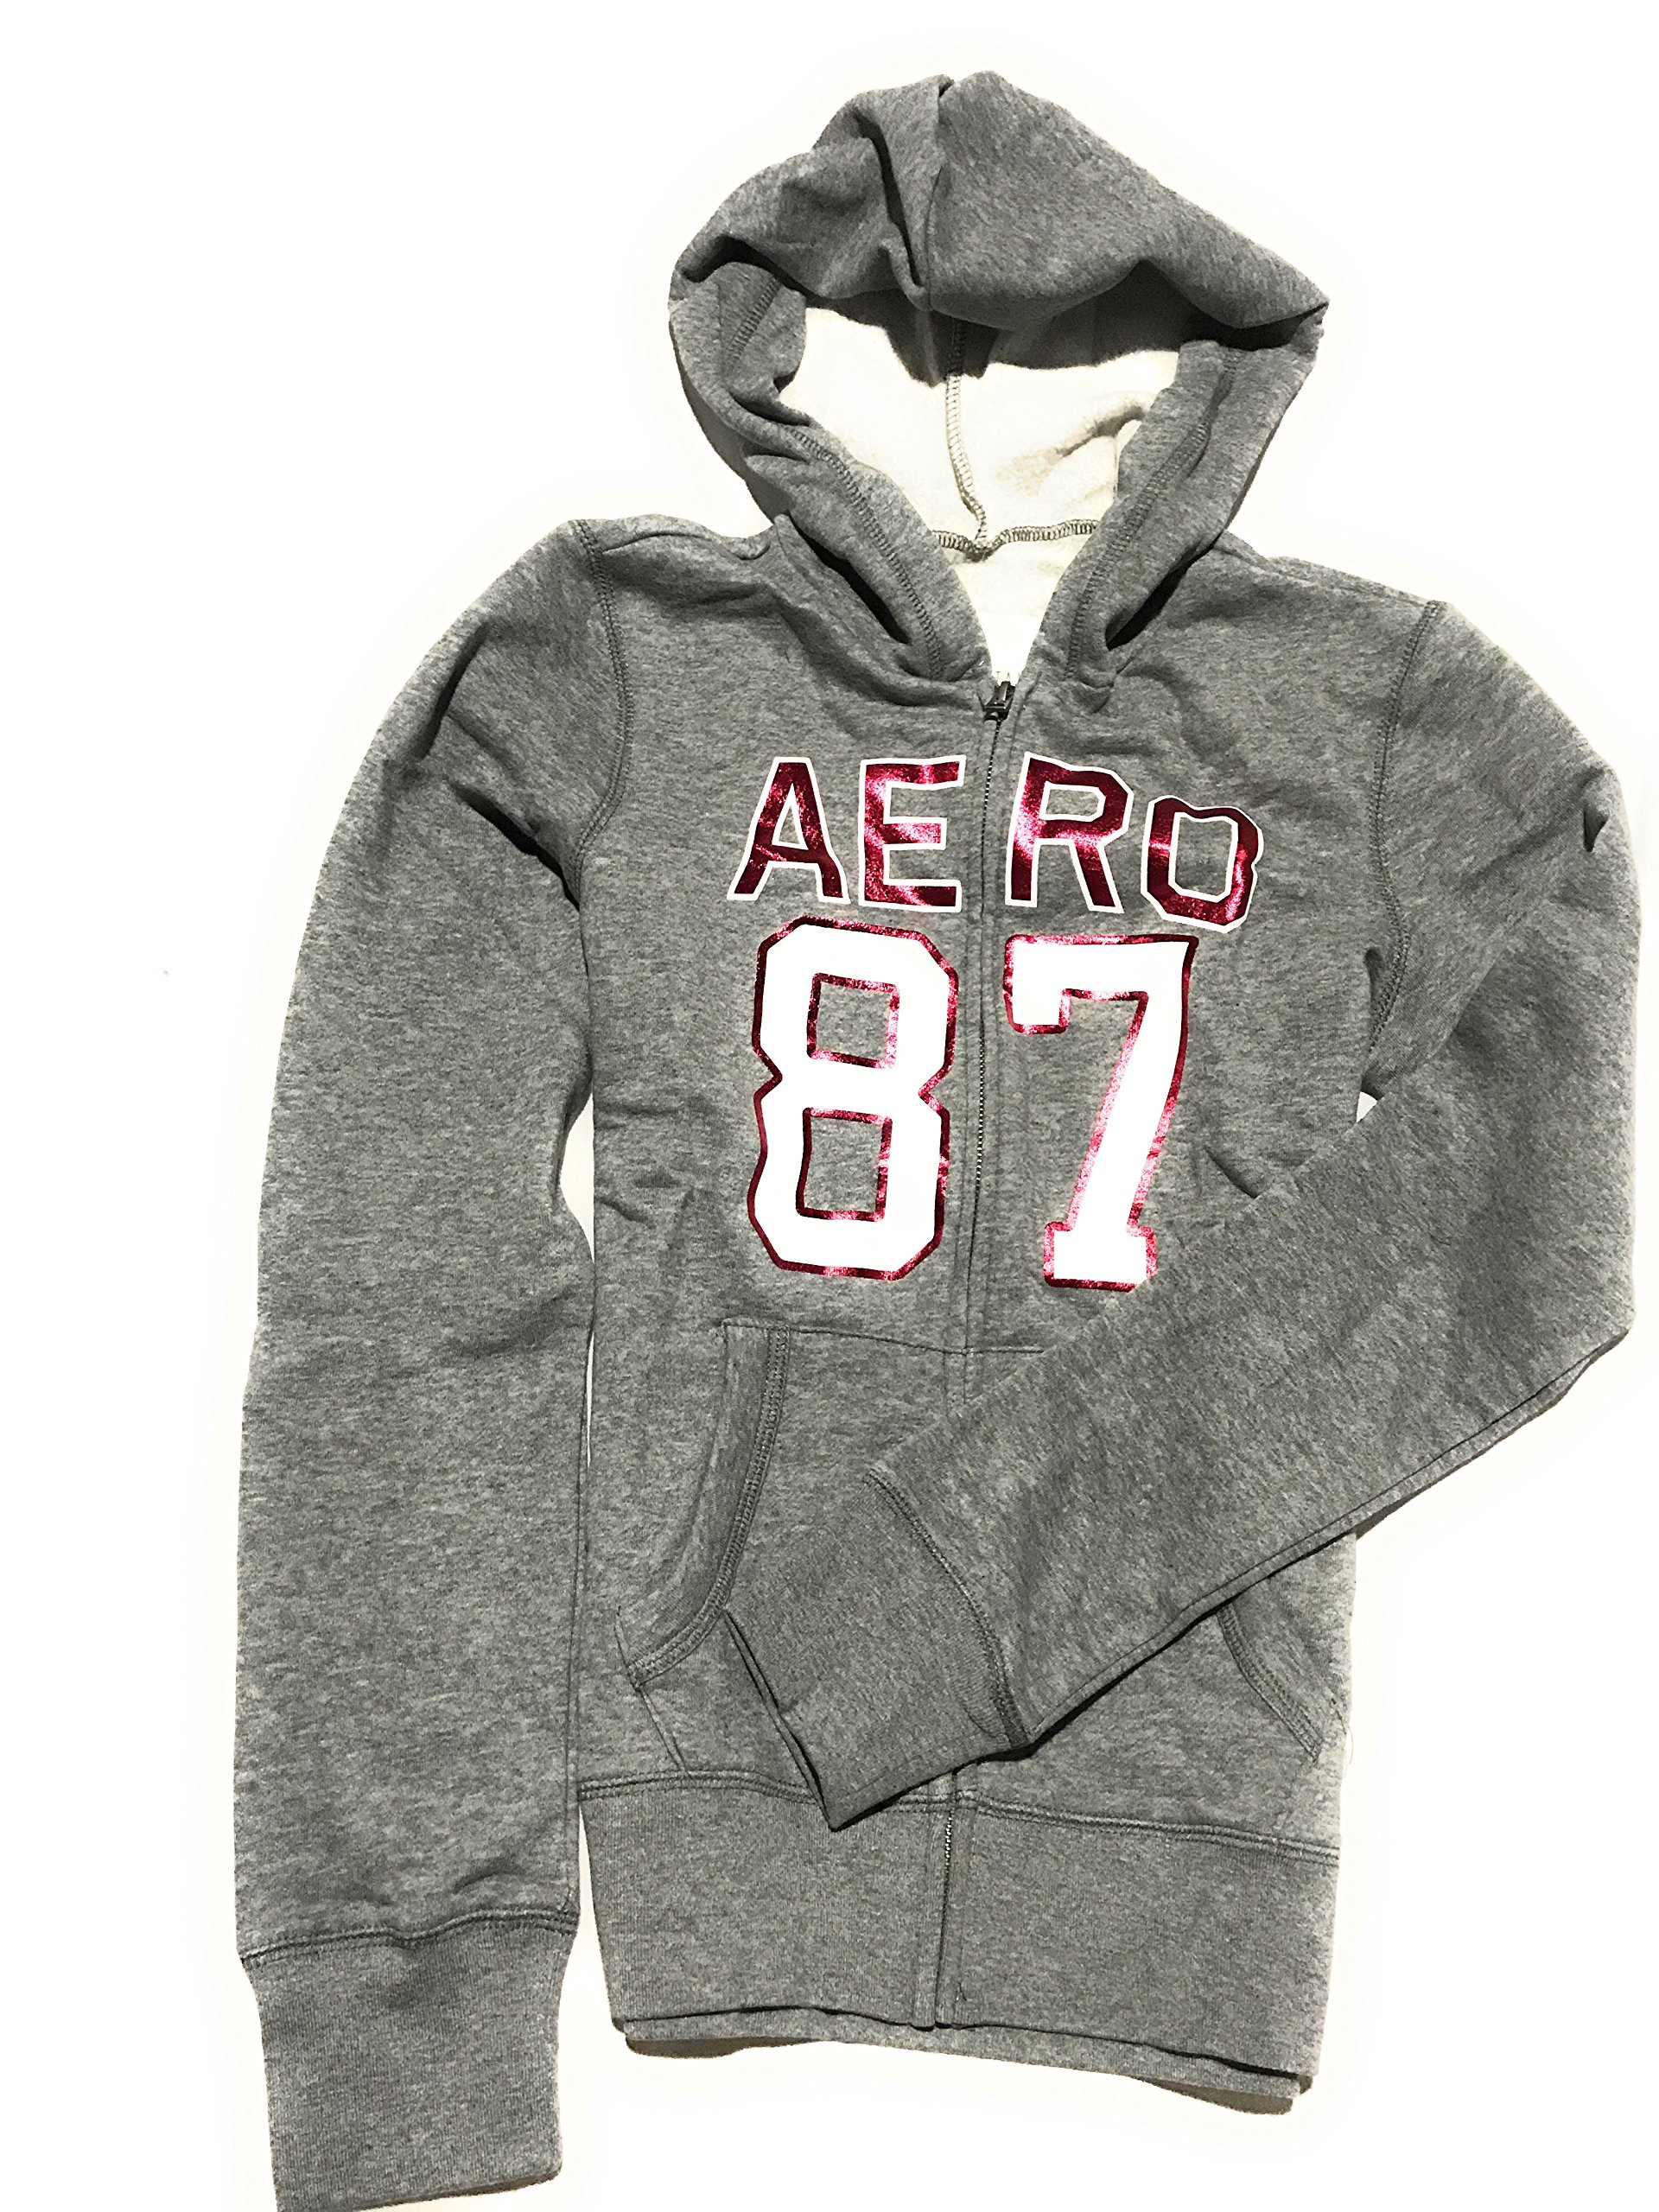 Aeropostale Women's Classic Zip-up Graphic Mountain Hoodie With Logo on The Arm Style 3948 (Grey, Small)